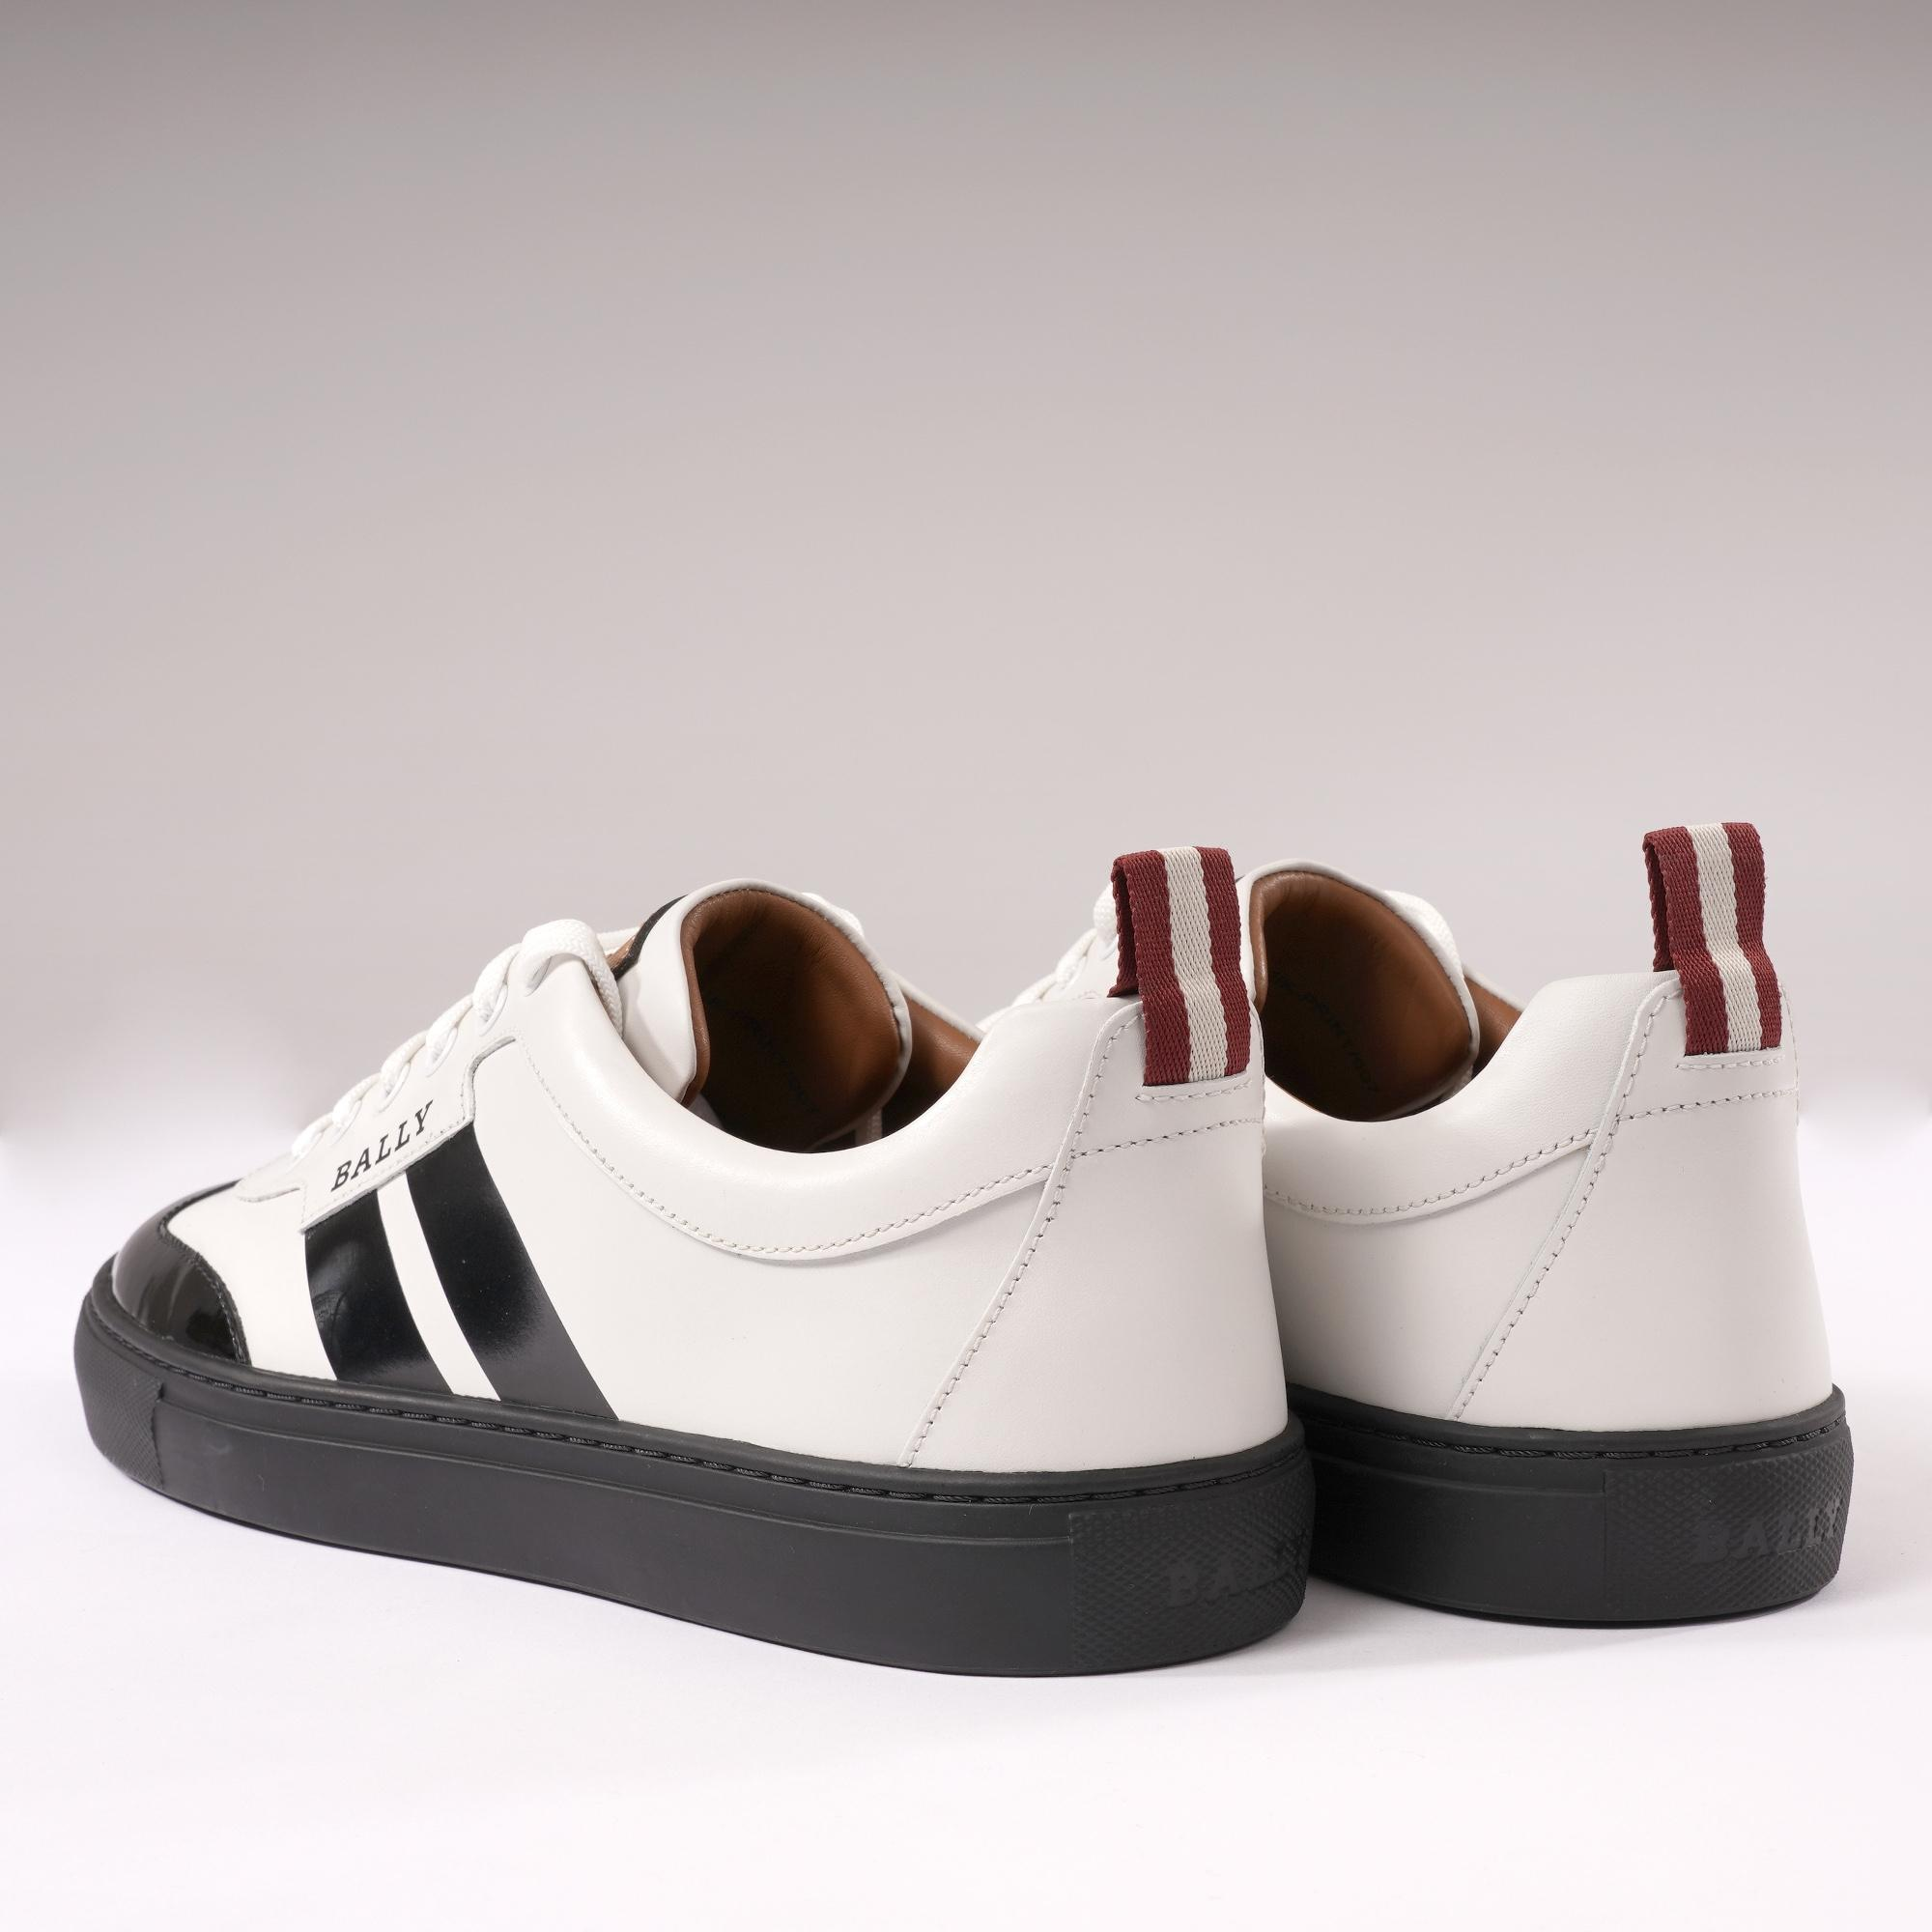 Bally Leather Hendrik Trainers - White